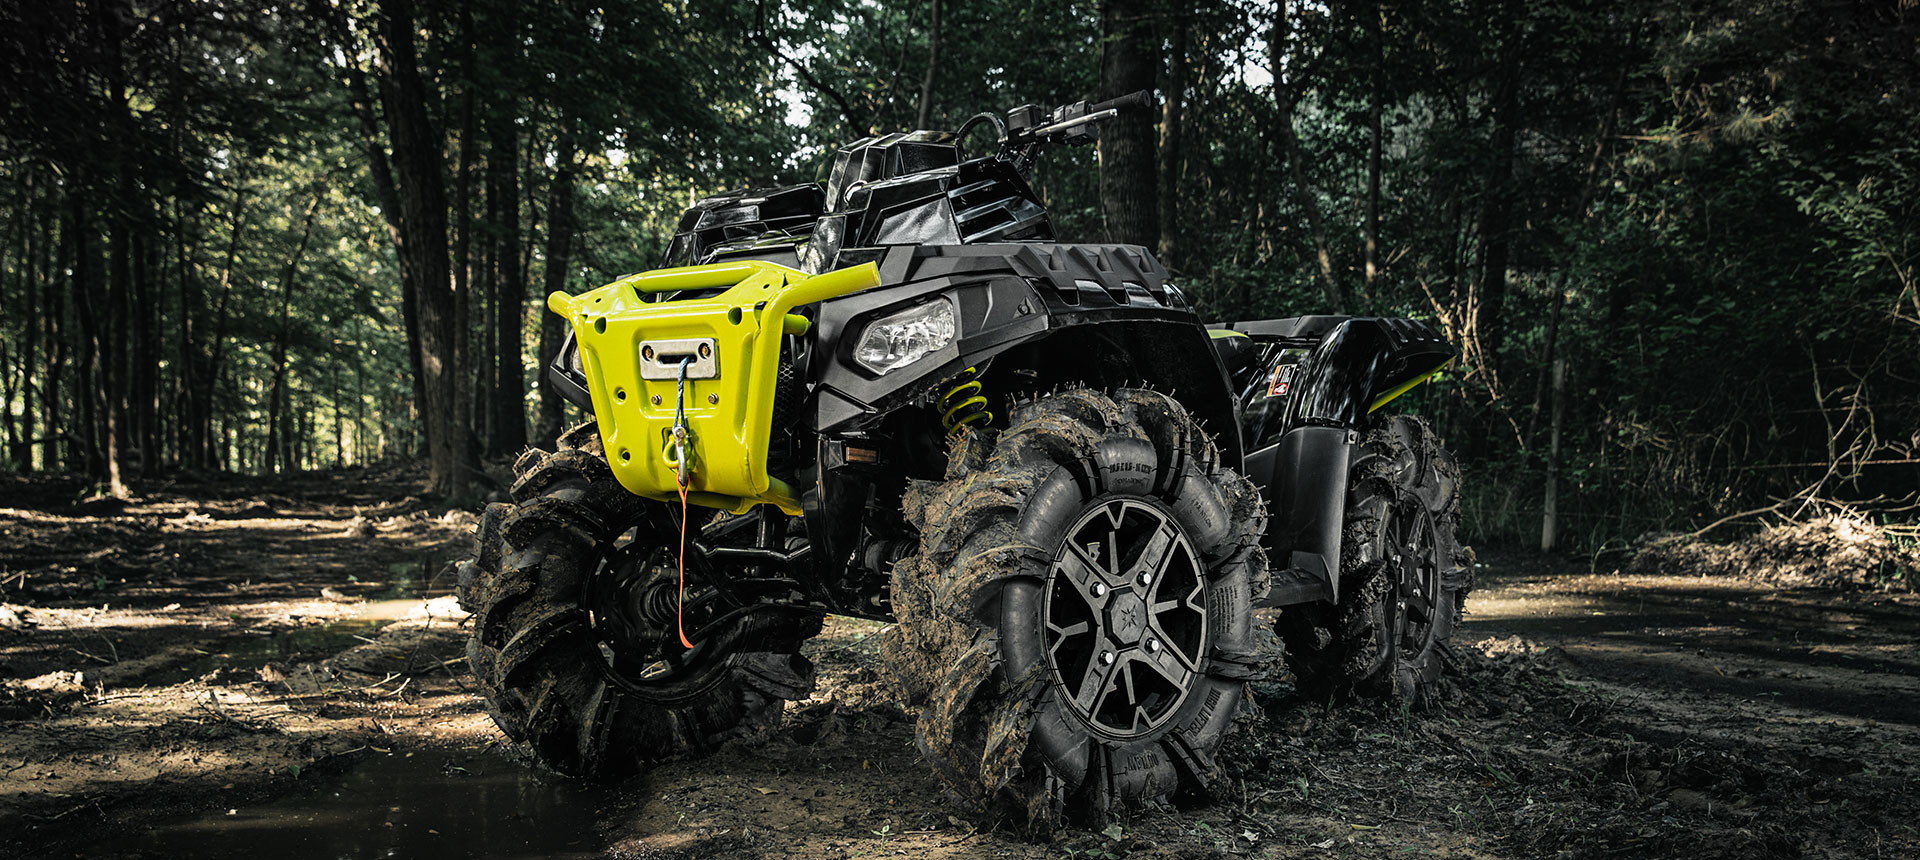 2020 Sportsman® 850 High Lifter Edition Instagram image 9